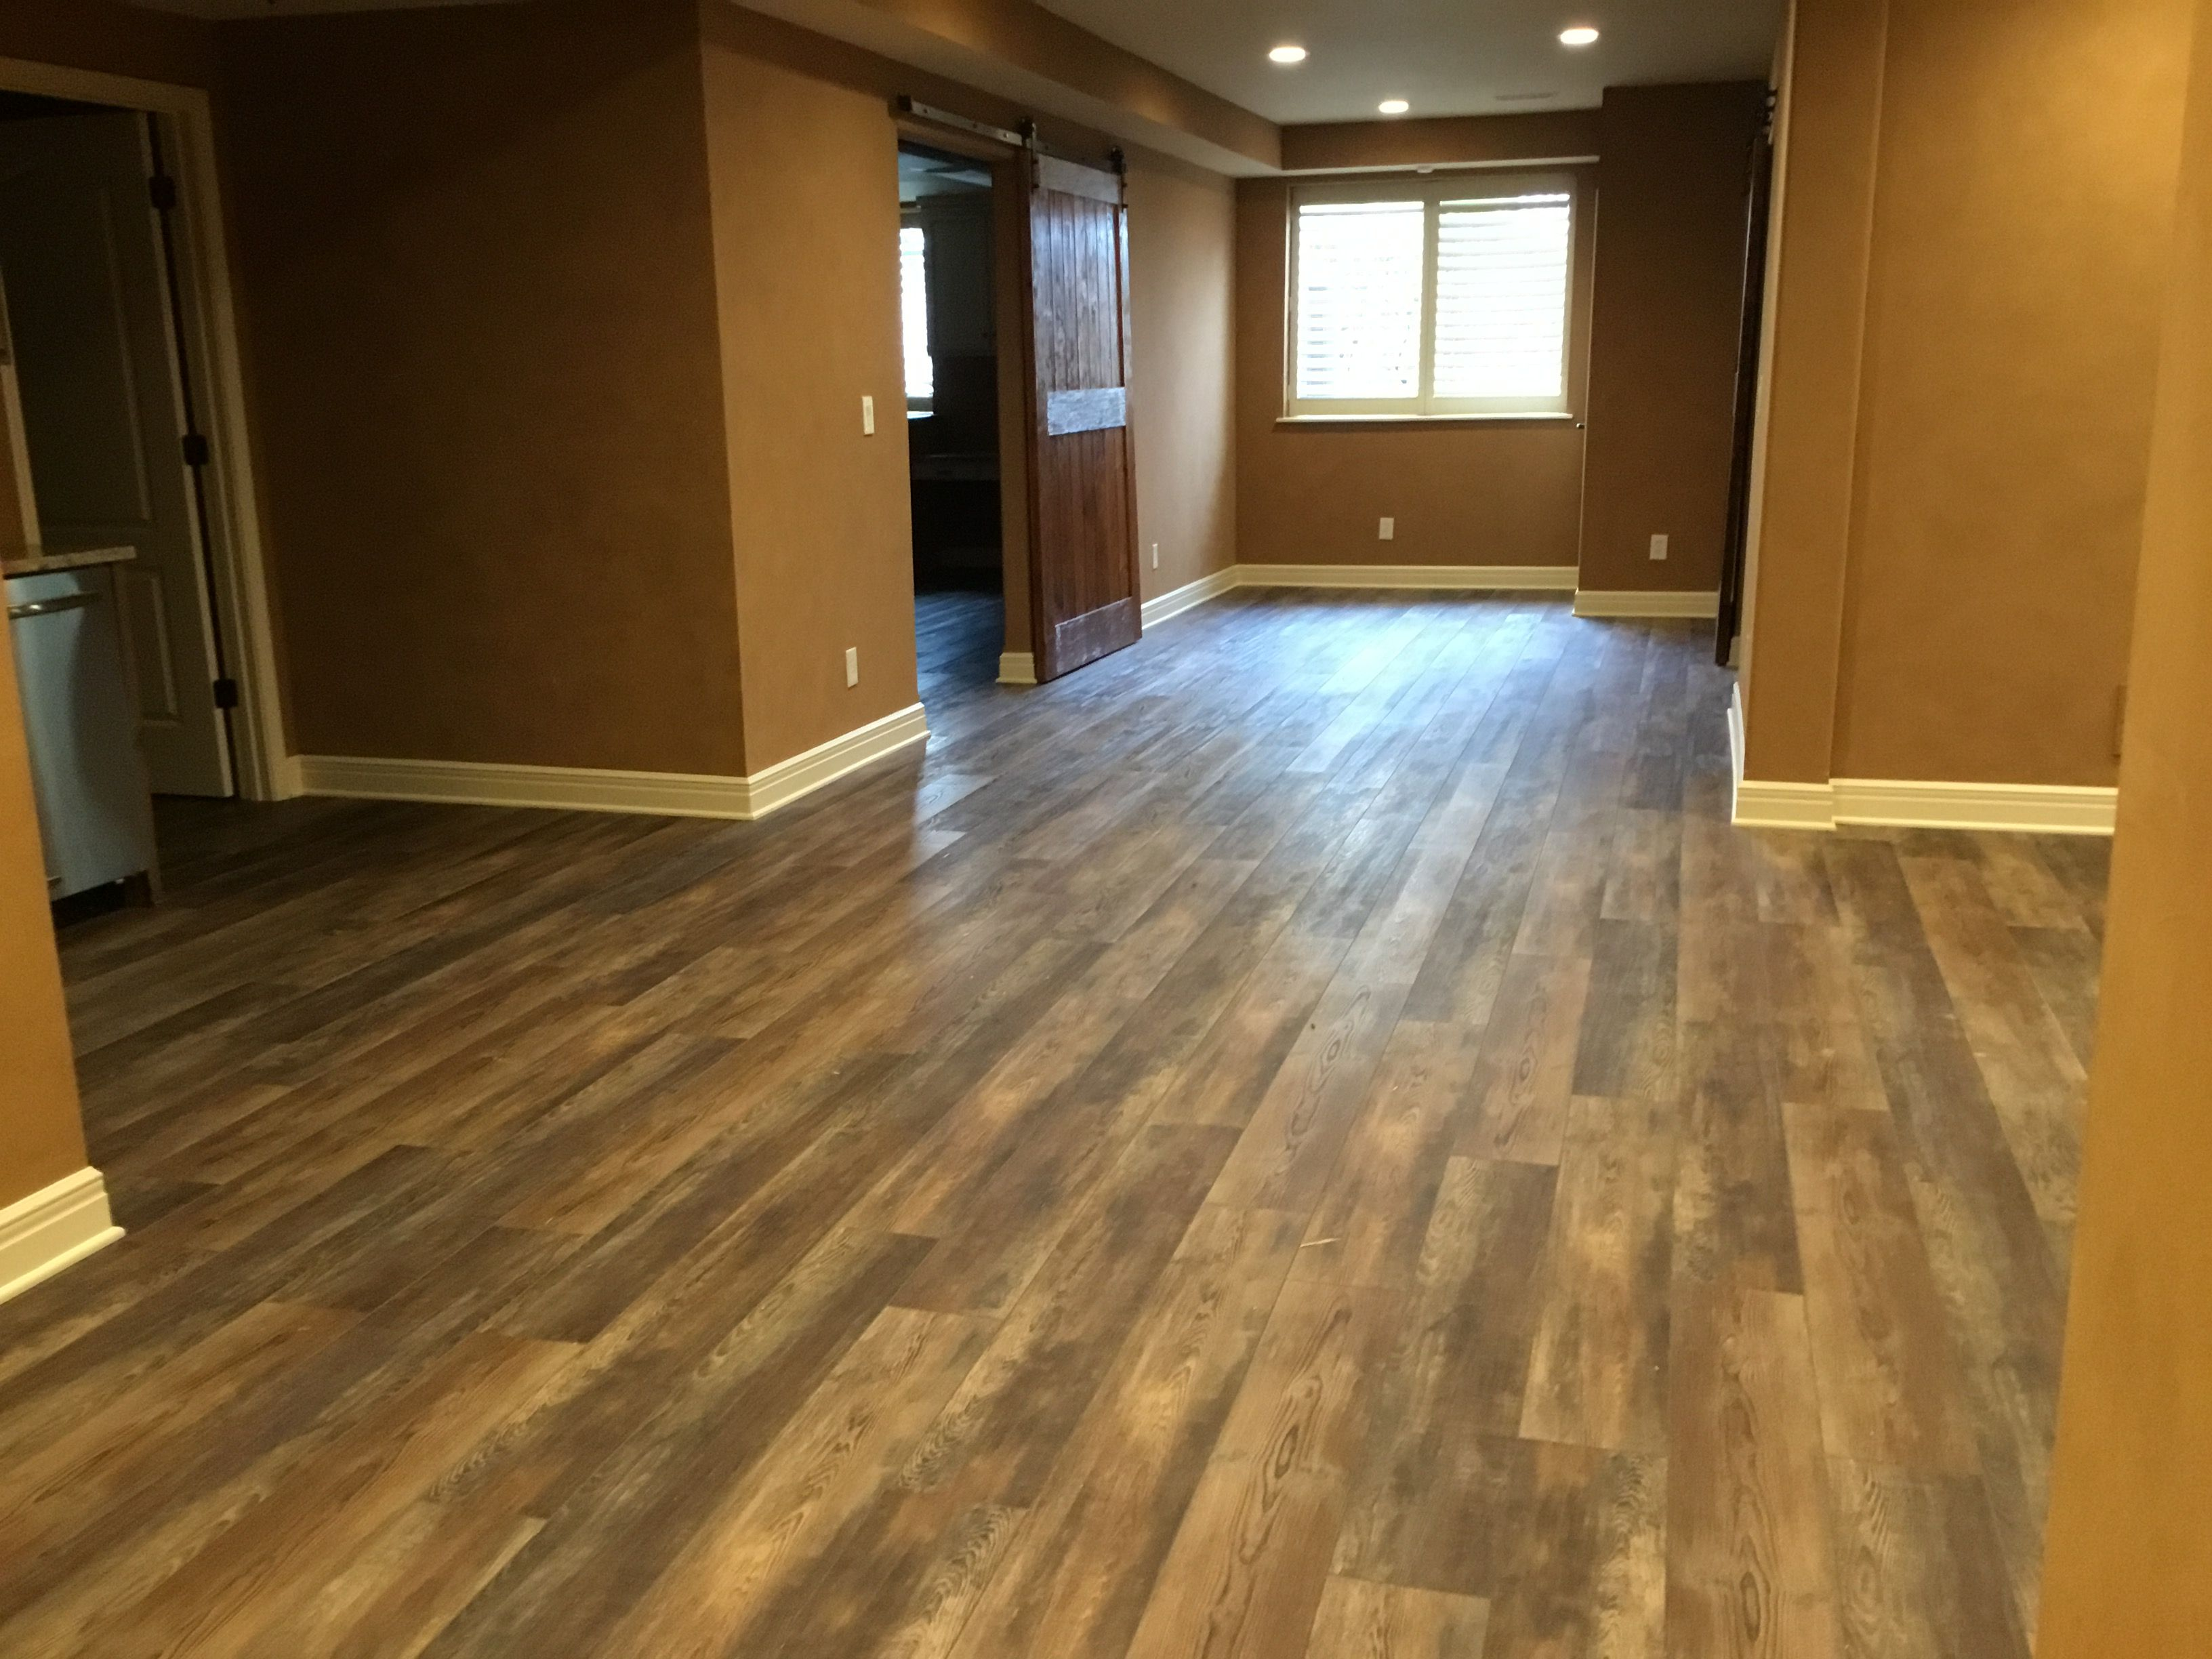 Luxury Vinyl Plank By Shaw Floors Color Is Orso Luxury Vinyl Plank Vinyl Plank Floor Colors